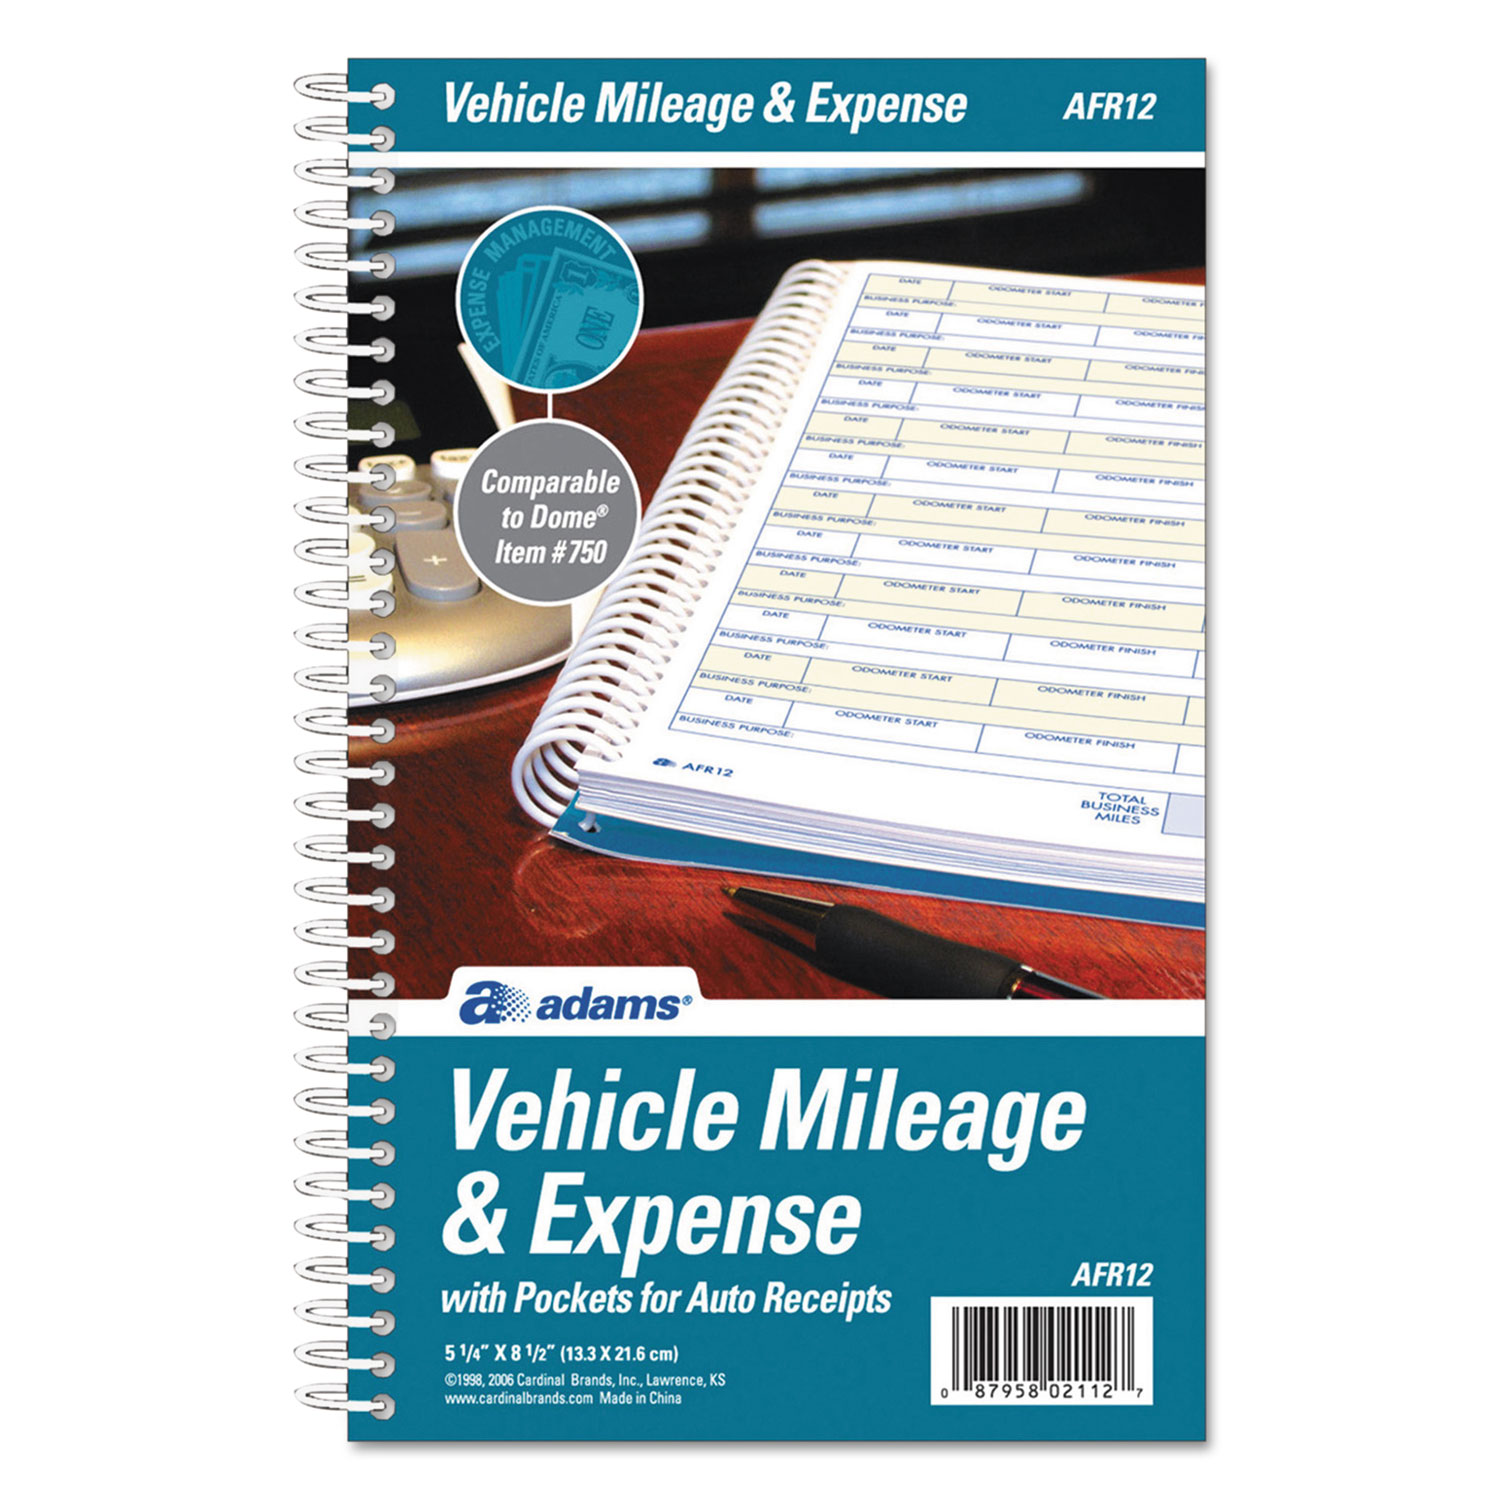 vehicle mileage and expense book by adams abfafr12 ontimesupplies com